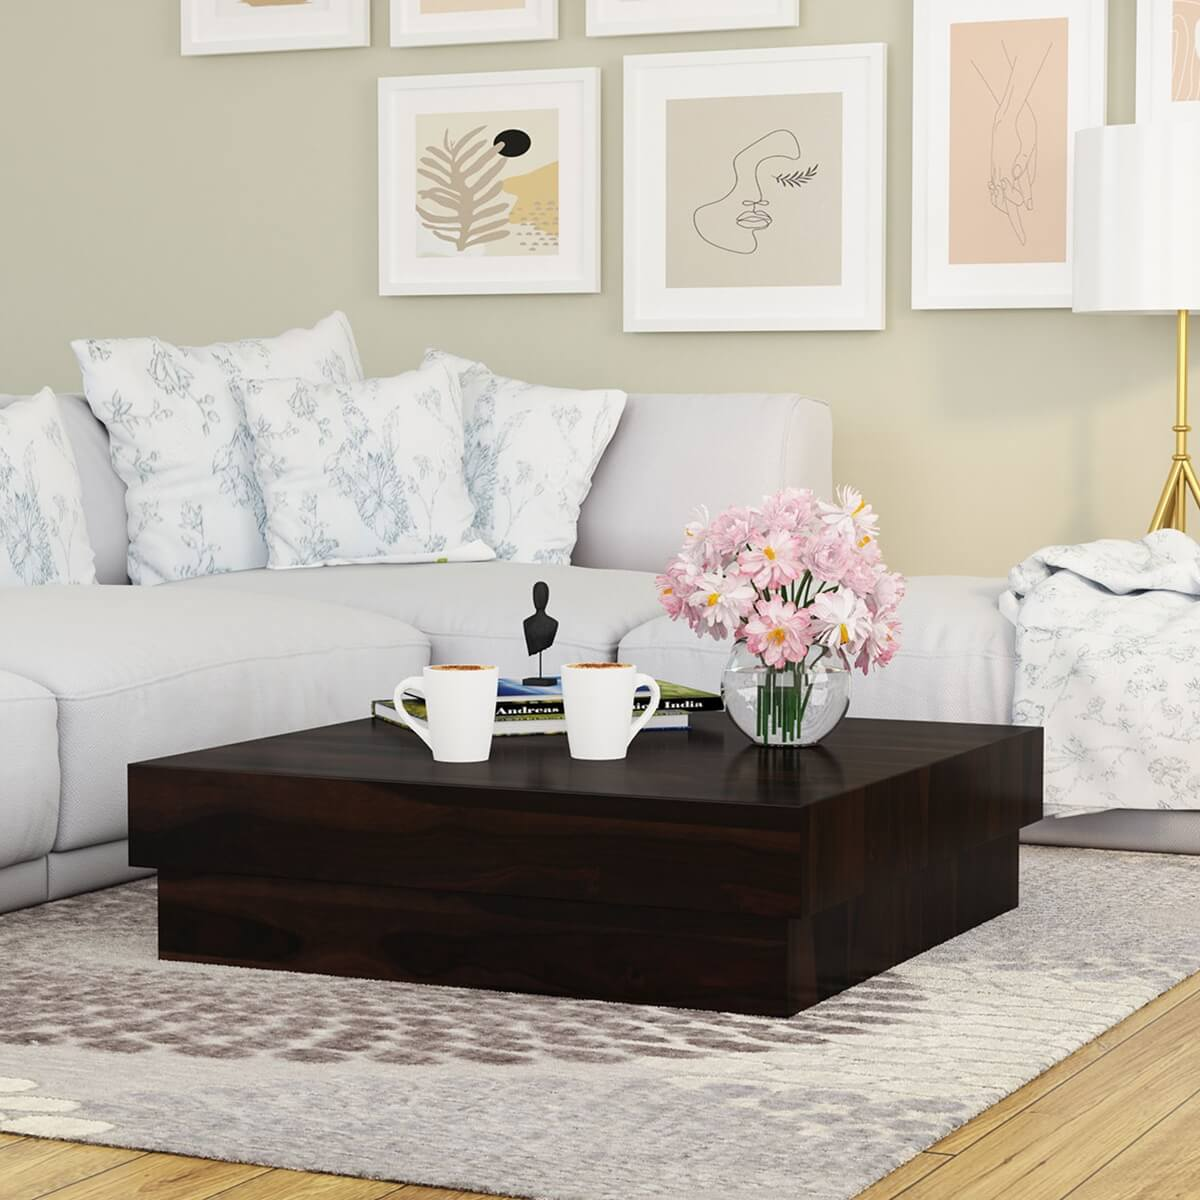 Solid wood square contemporary platform unique coffee table for Solid wood coffee table